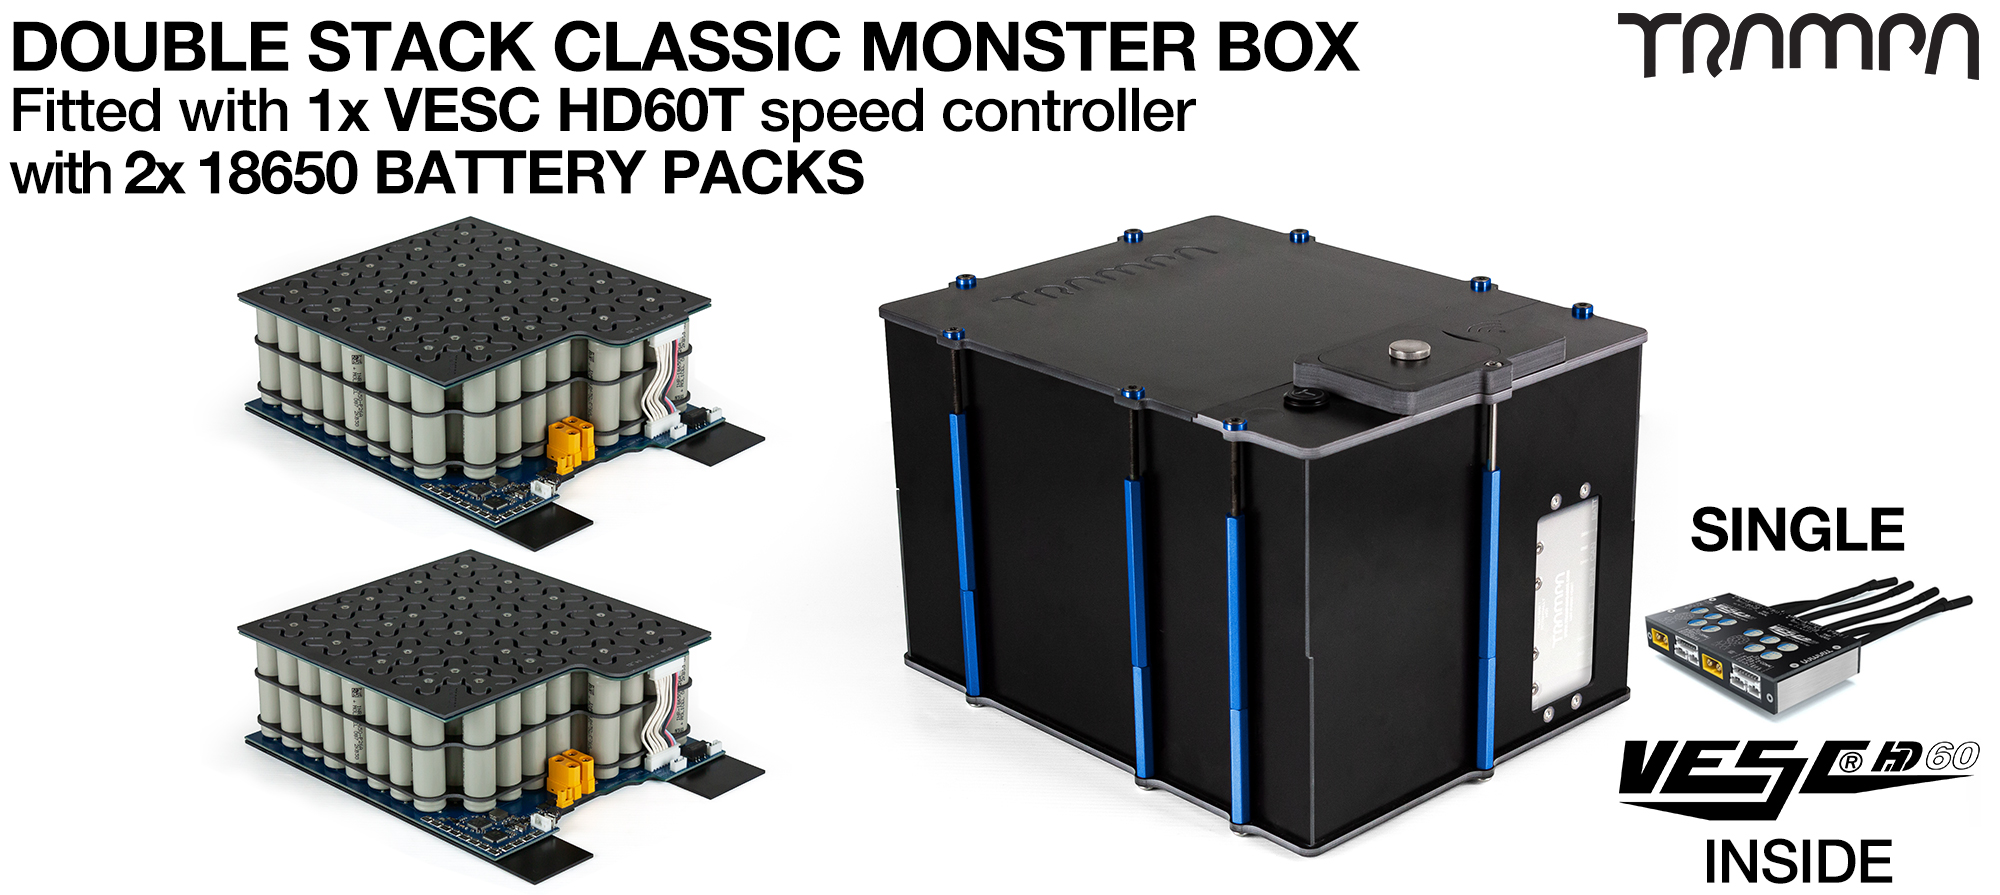 Classic MONSTER Box MkV DOUBLE STACKER - with 18650 PCB Pack, 1x VESC HD-60Twin & 84x 18650 cells 12s7p 21Ah - PCB based Battery Pack with Integrated Battery Management System (BMS) - UK CUSTOMERS ONLY